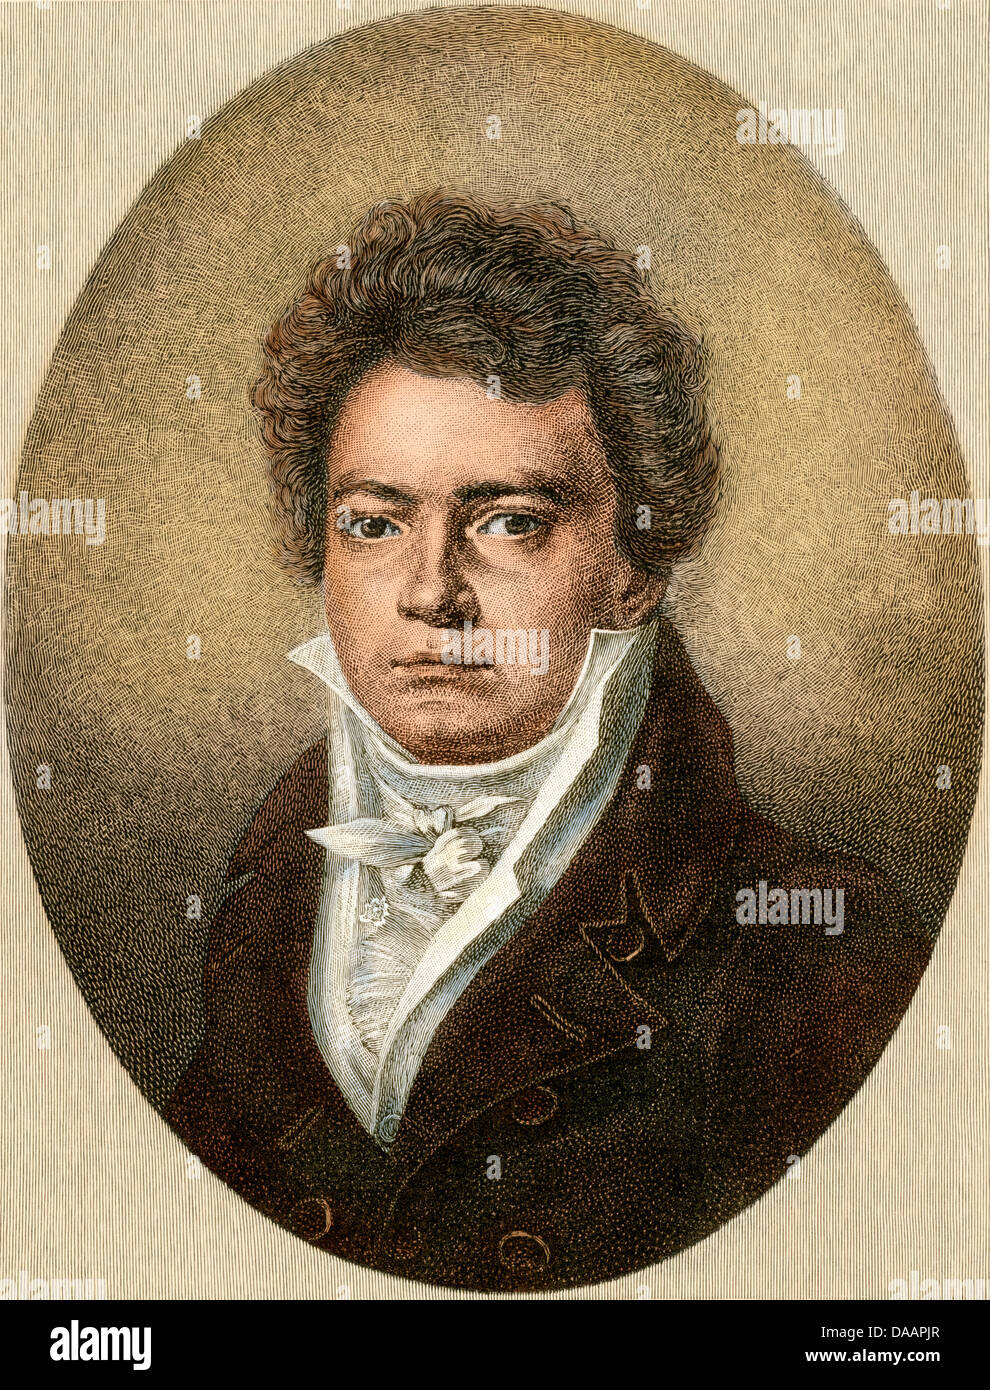 Ludwig van Beethoven in 1812. Digitally colored engraving of a drawing by Louis Latronne - Stock Image